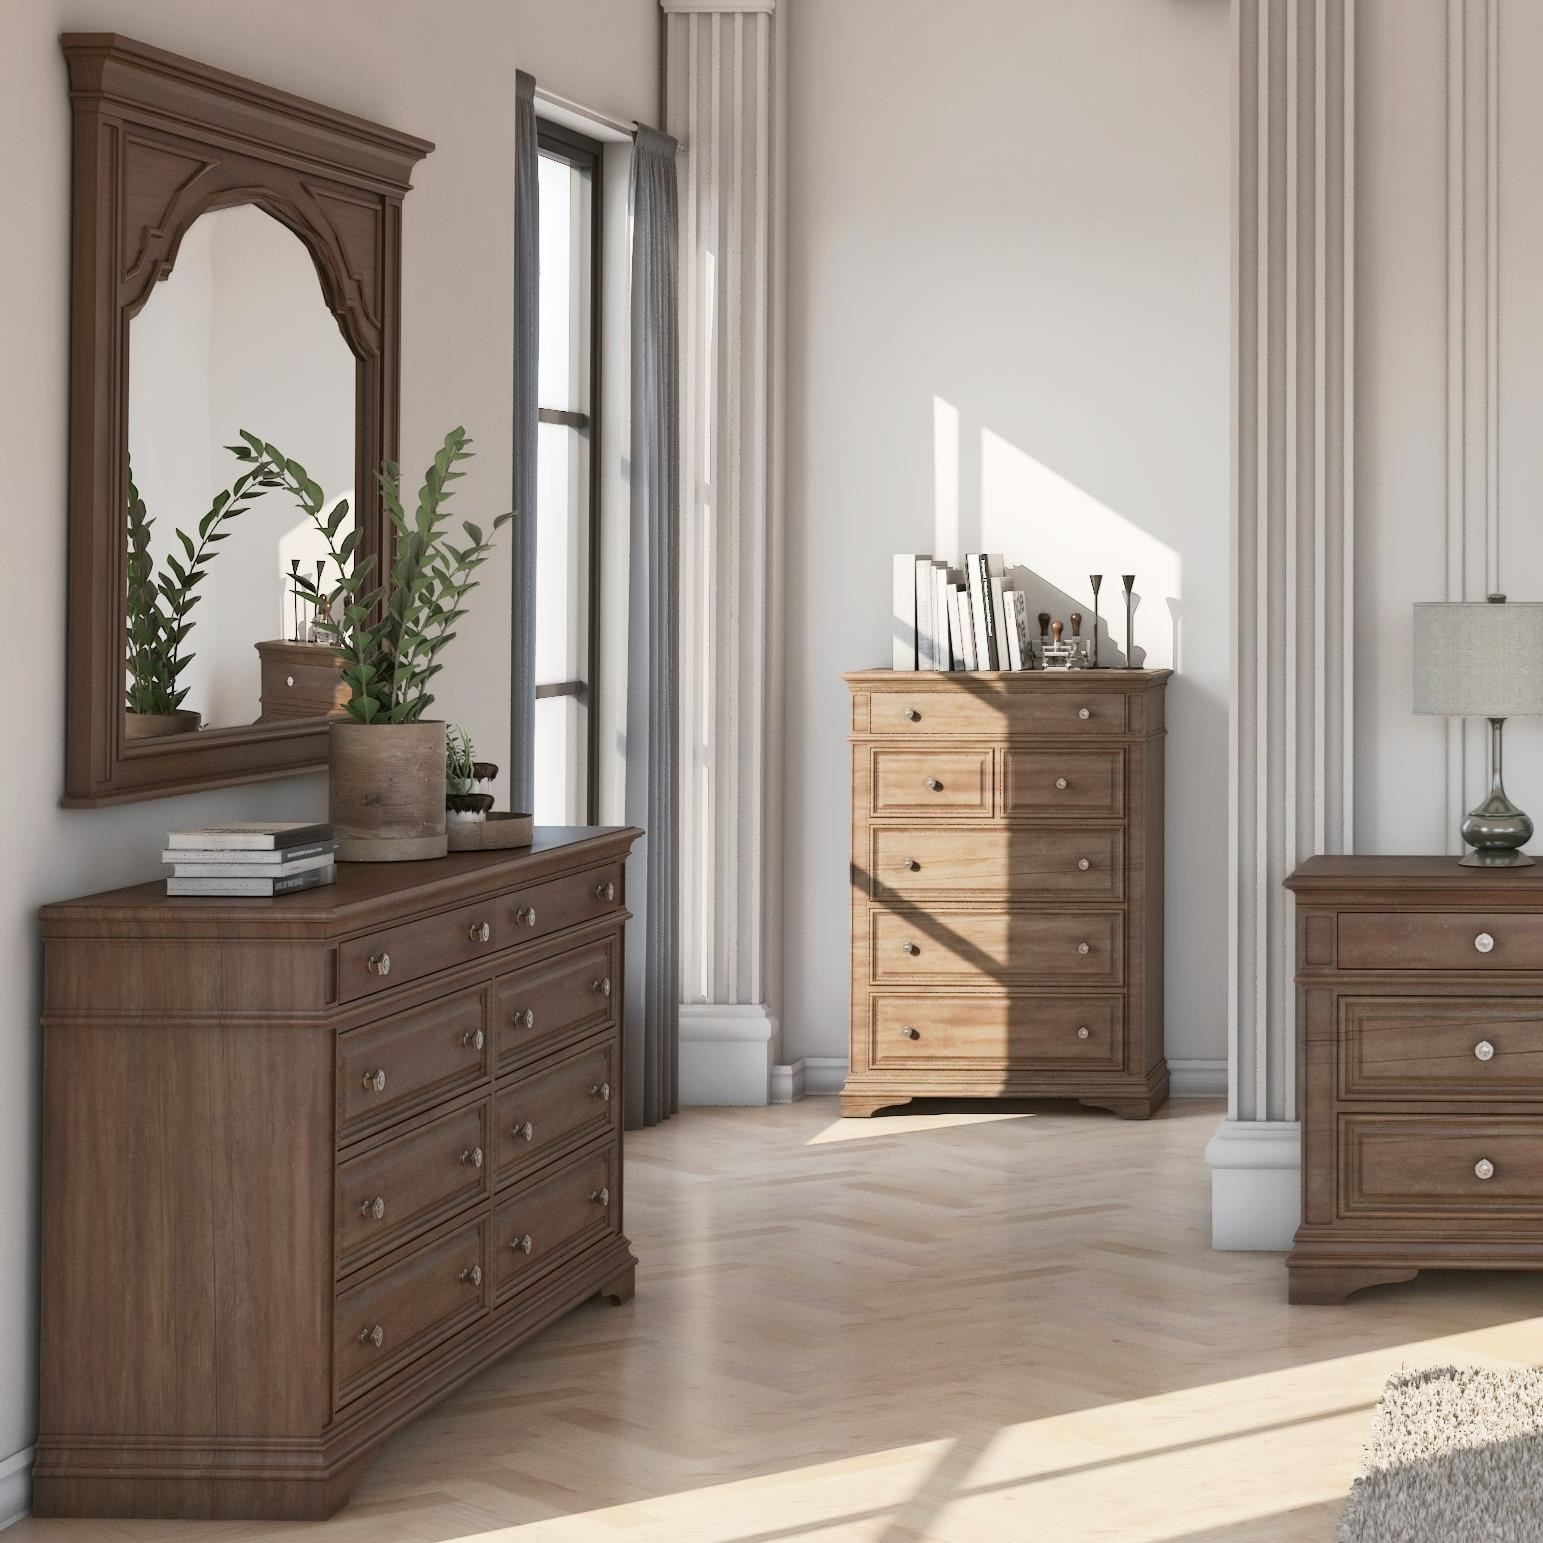 Highland Park Dresser and Mirror Set by Steve Silver at Northeast Factory Direct